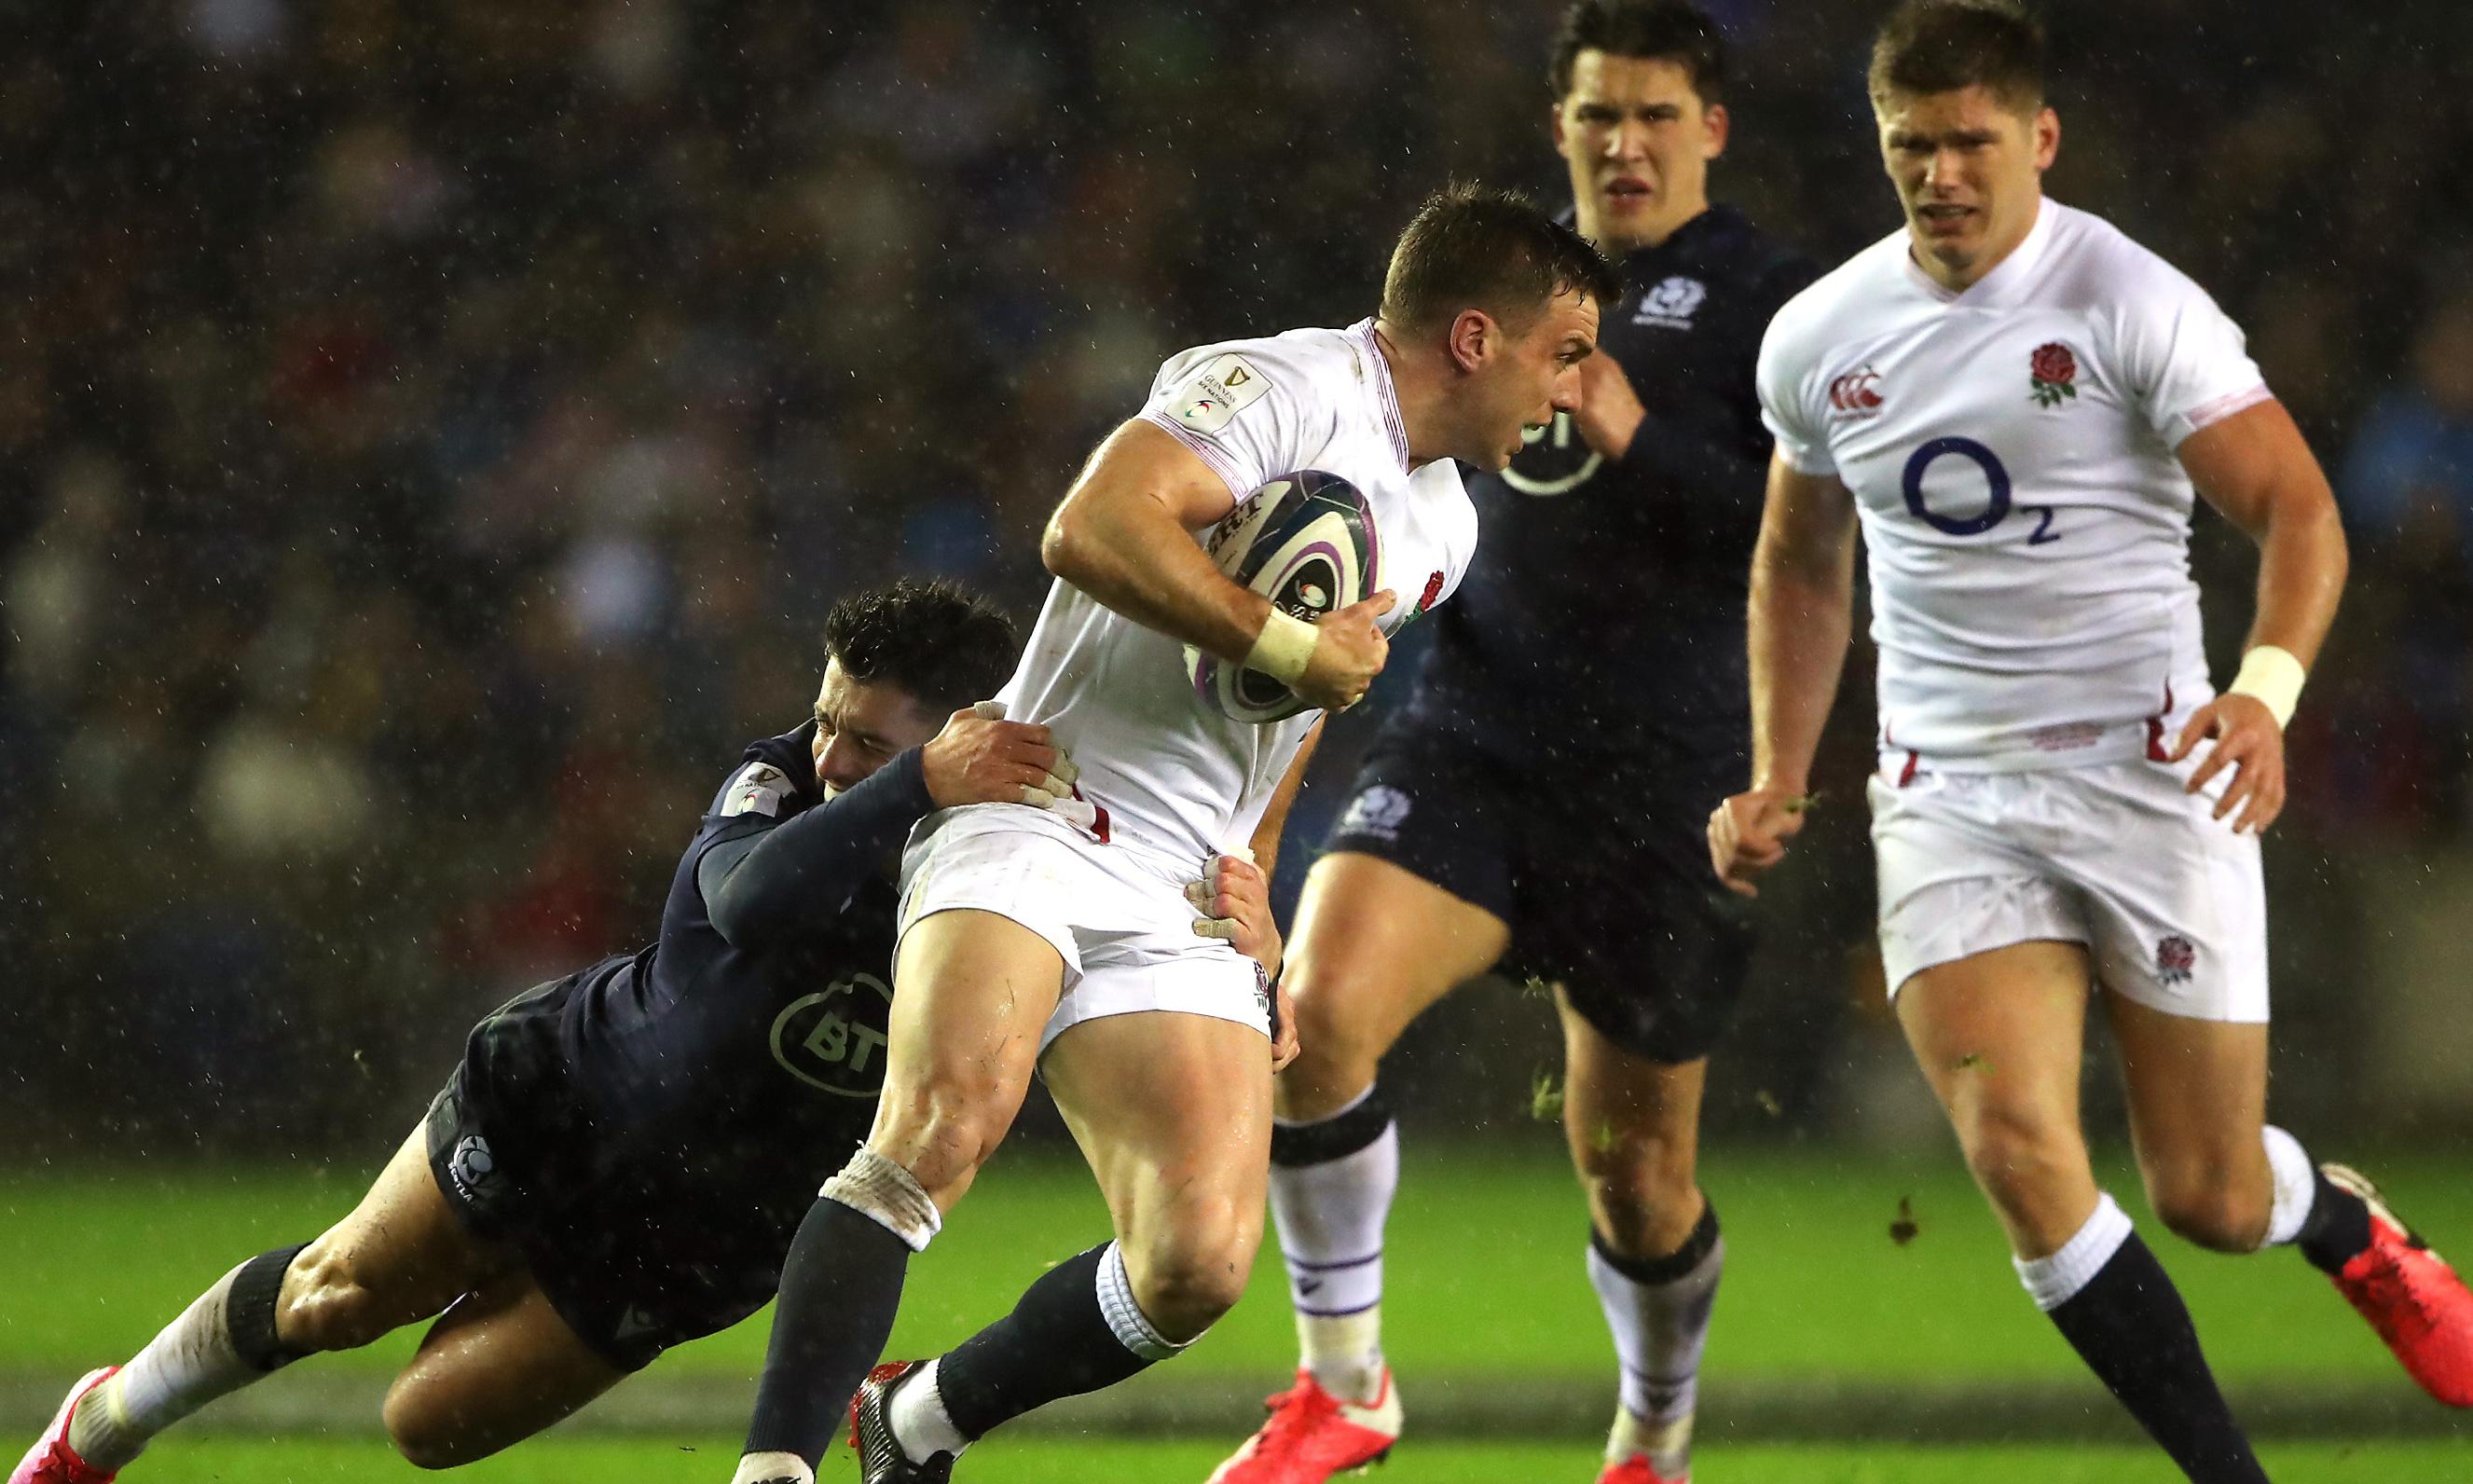 George Ford warns England: 'Ireland's Farrell is a very competitive guy'